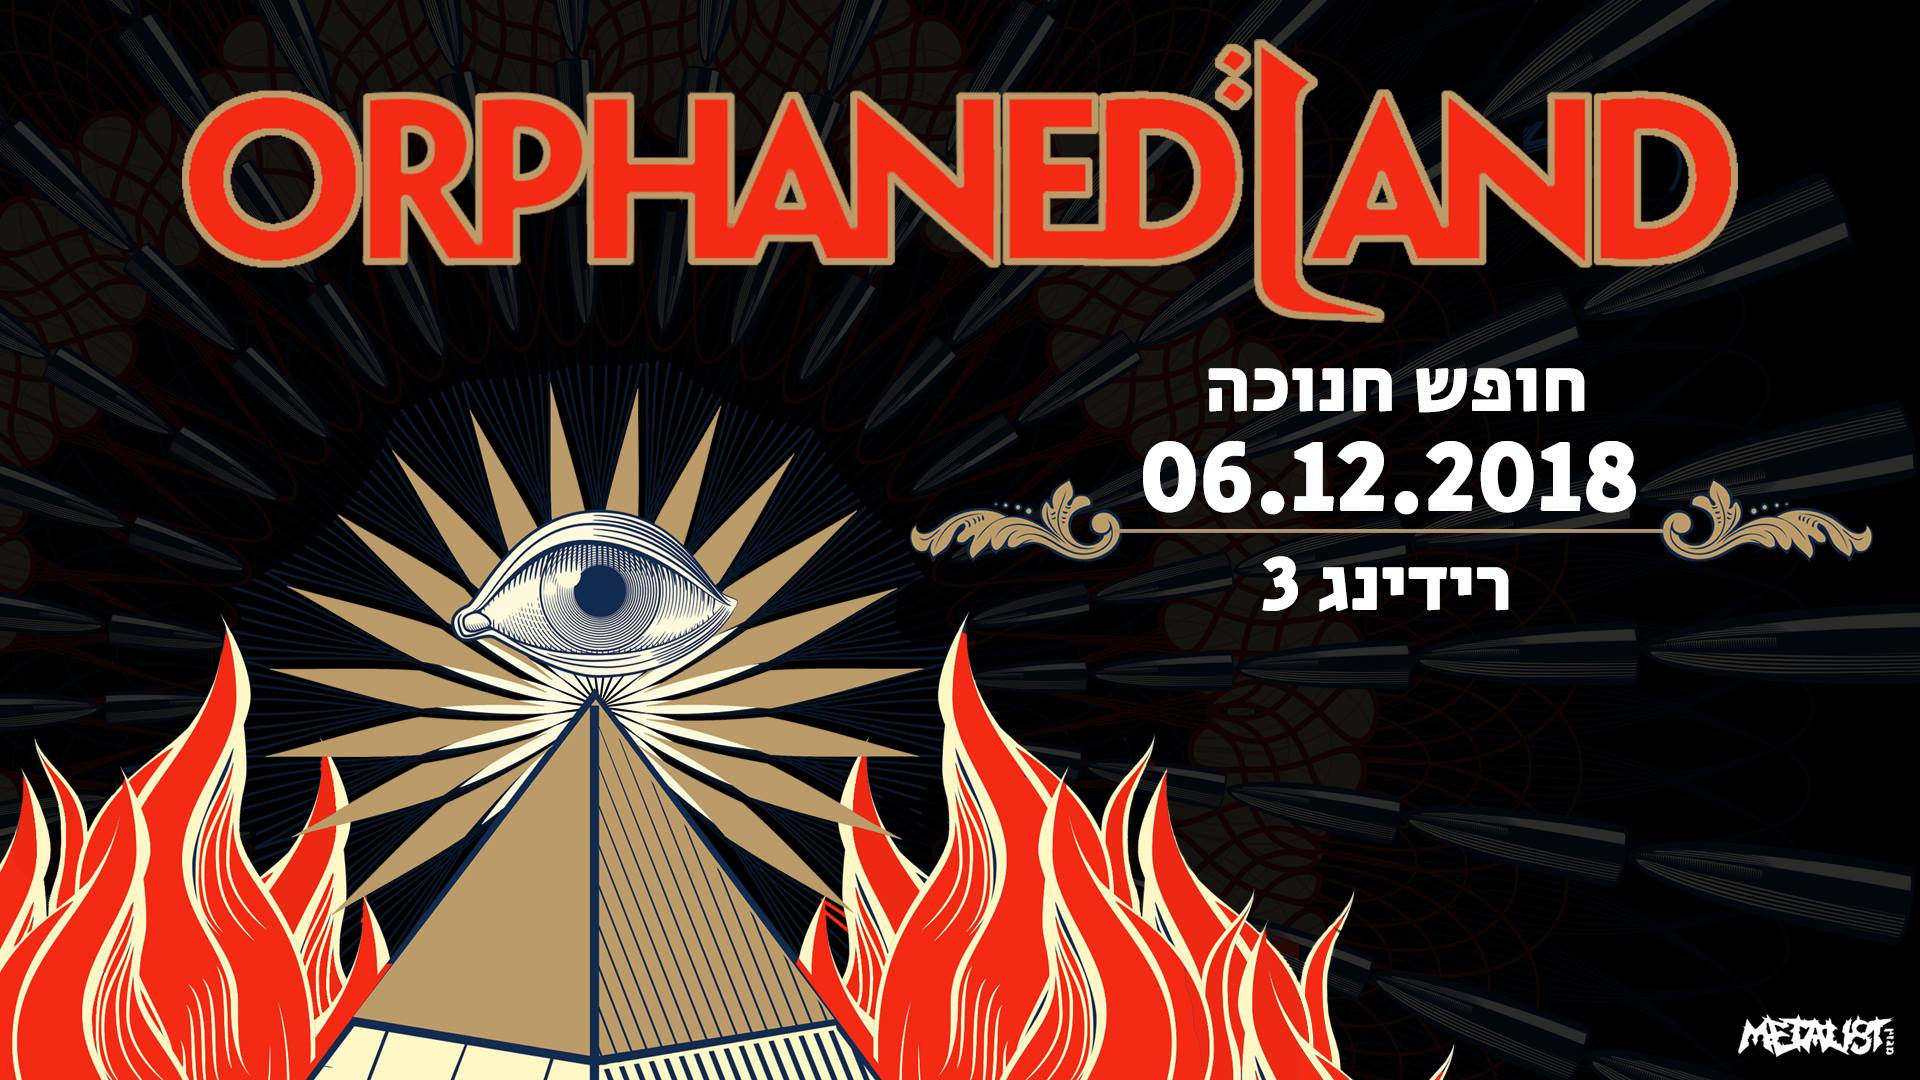 Orphaned Land Hannukah